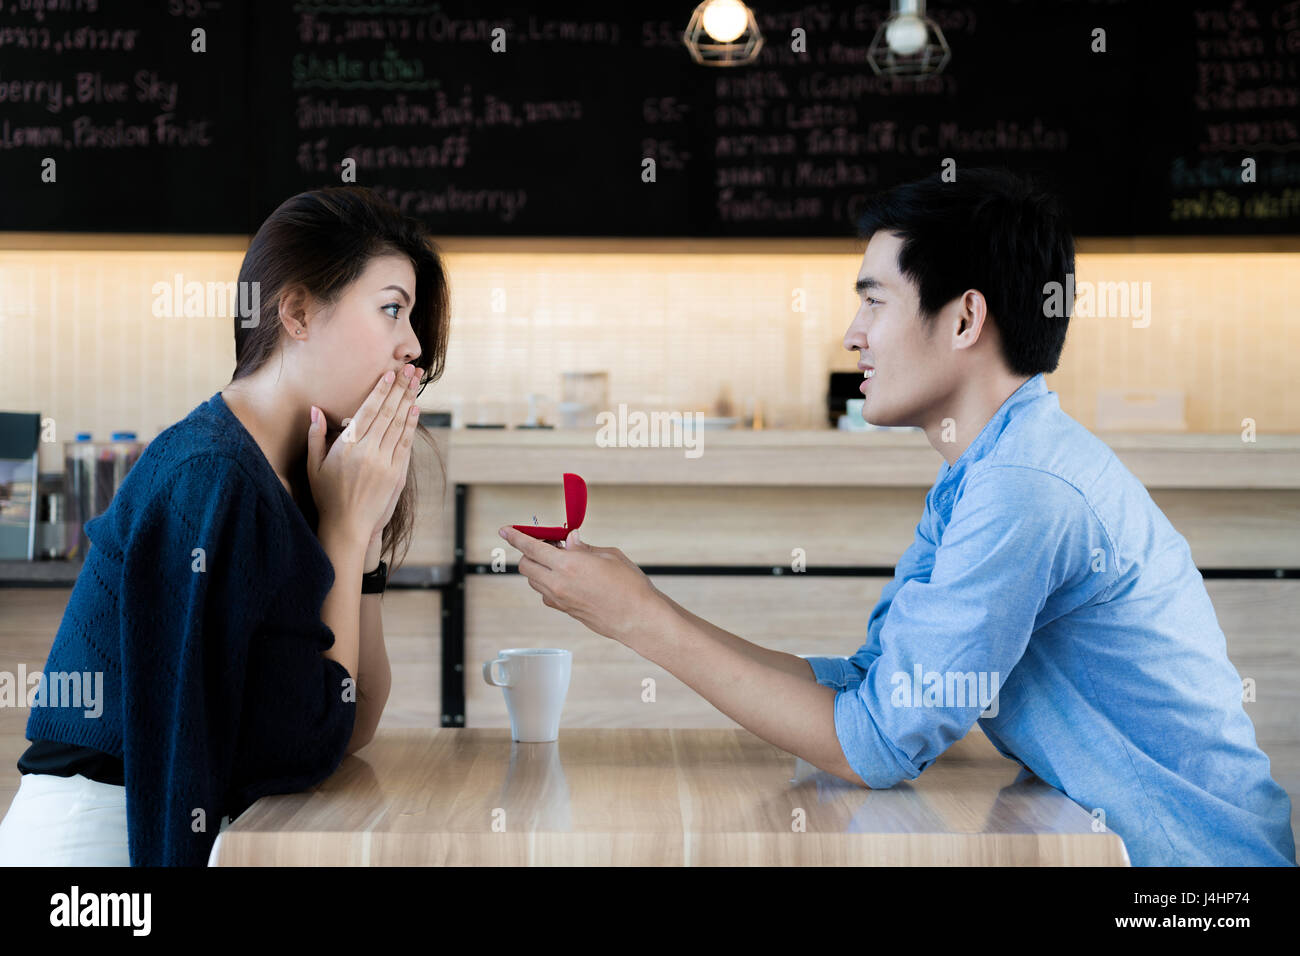 Asian man showing an engagement ring diamond to his amazed girlfriend in a restaurant. Proposal concept - Stock Image